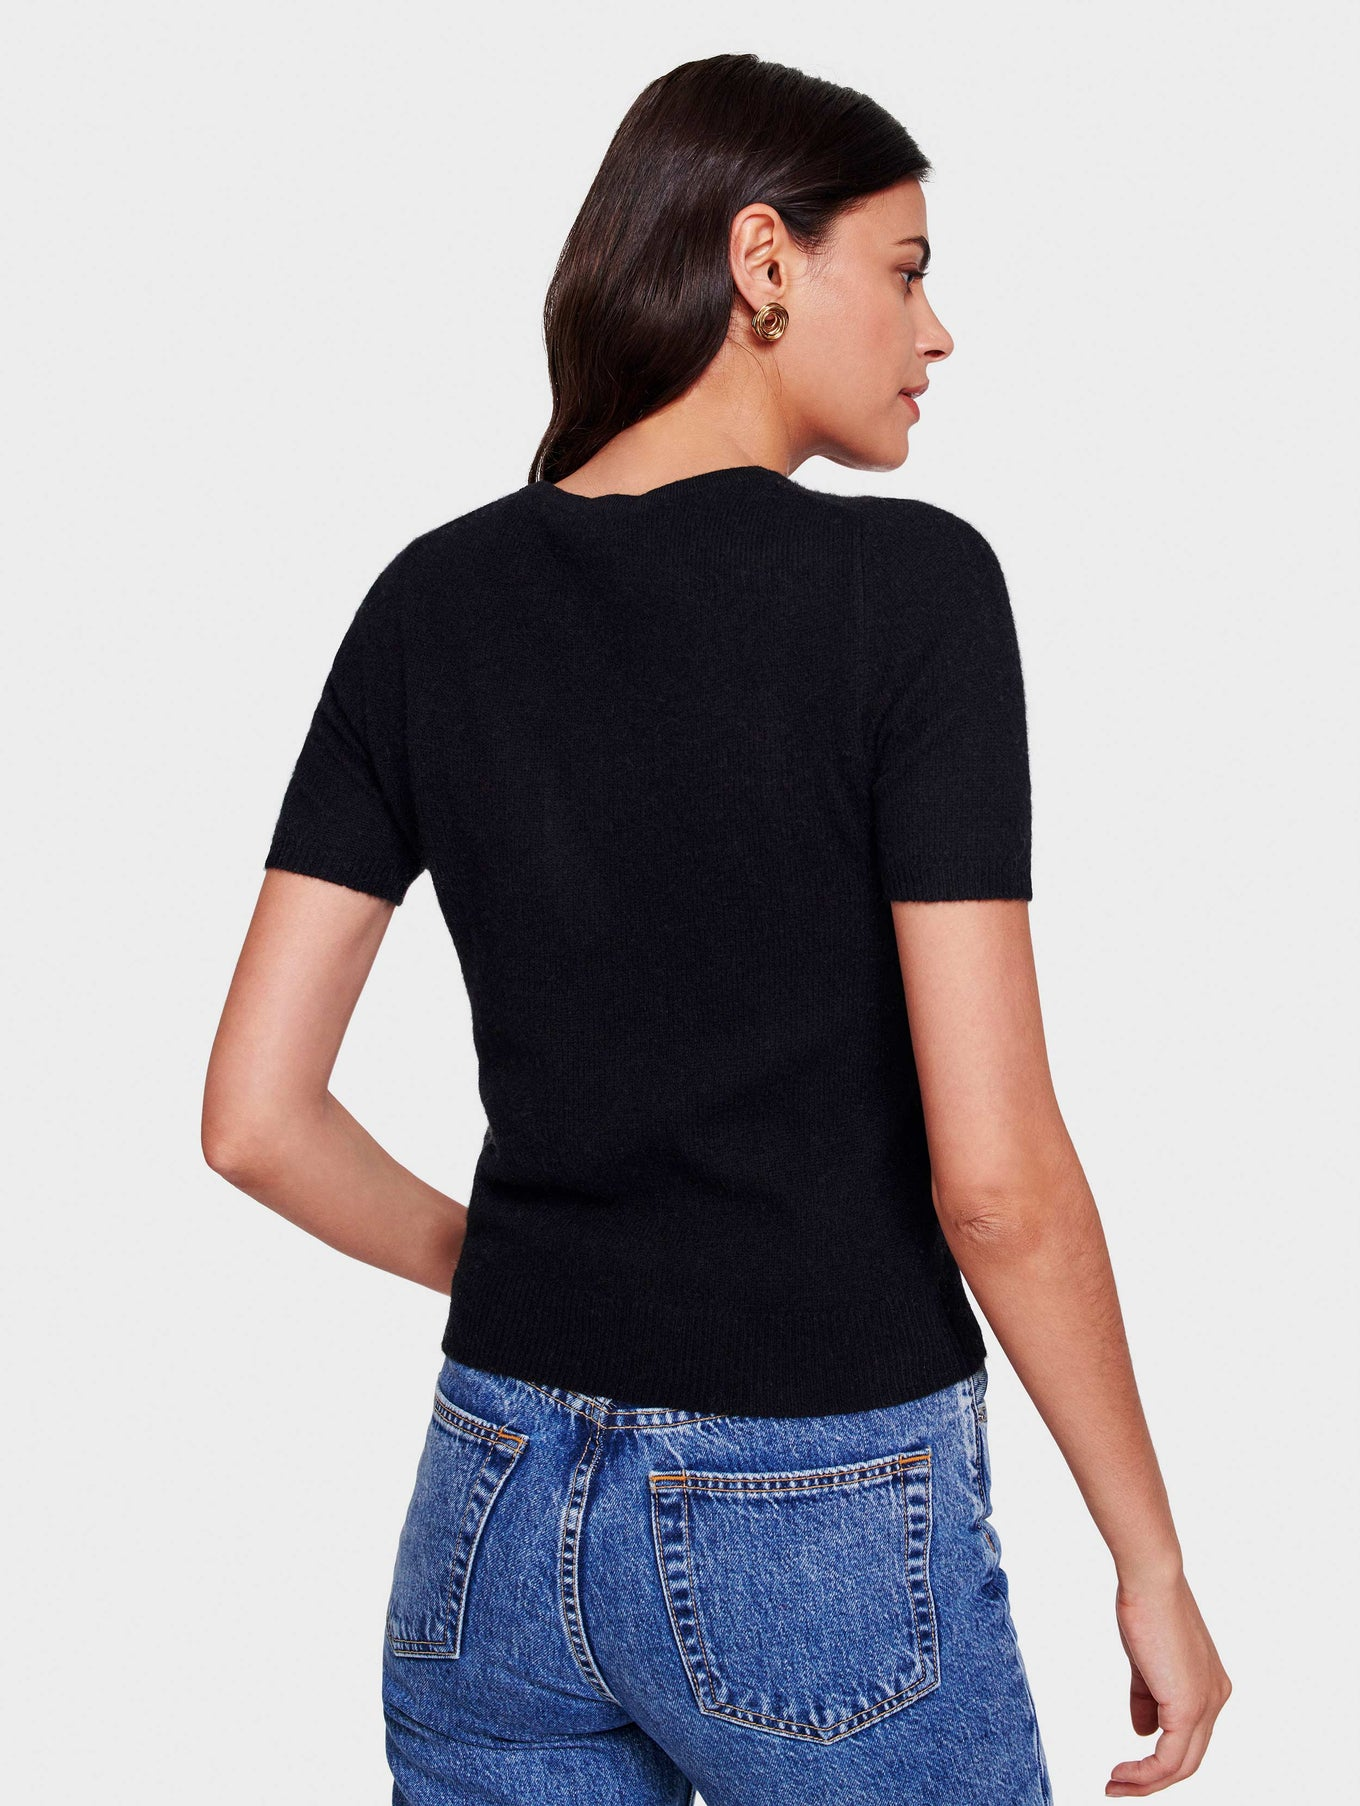 Cashmere Fitted Tee - Black - Image 3